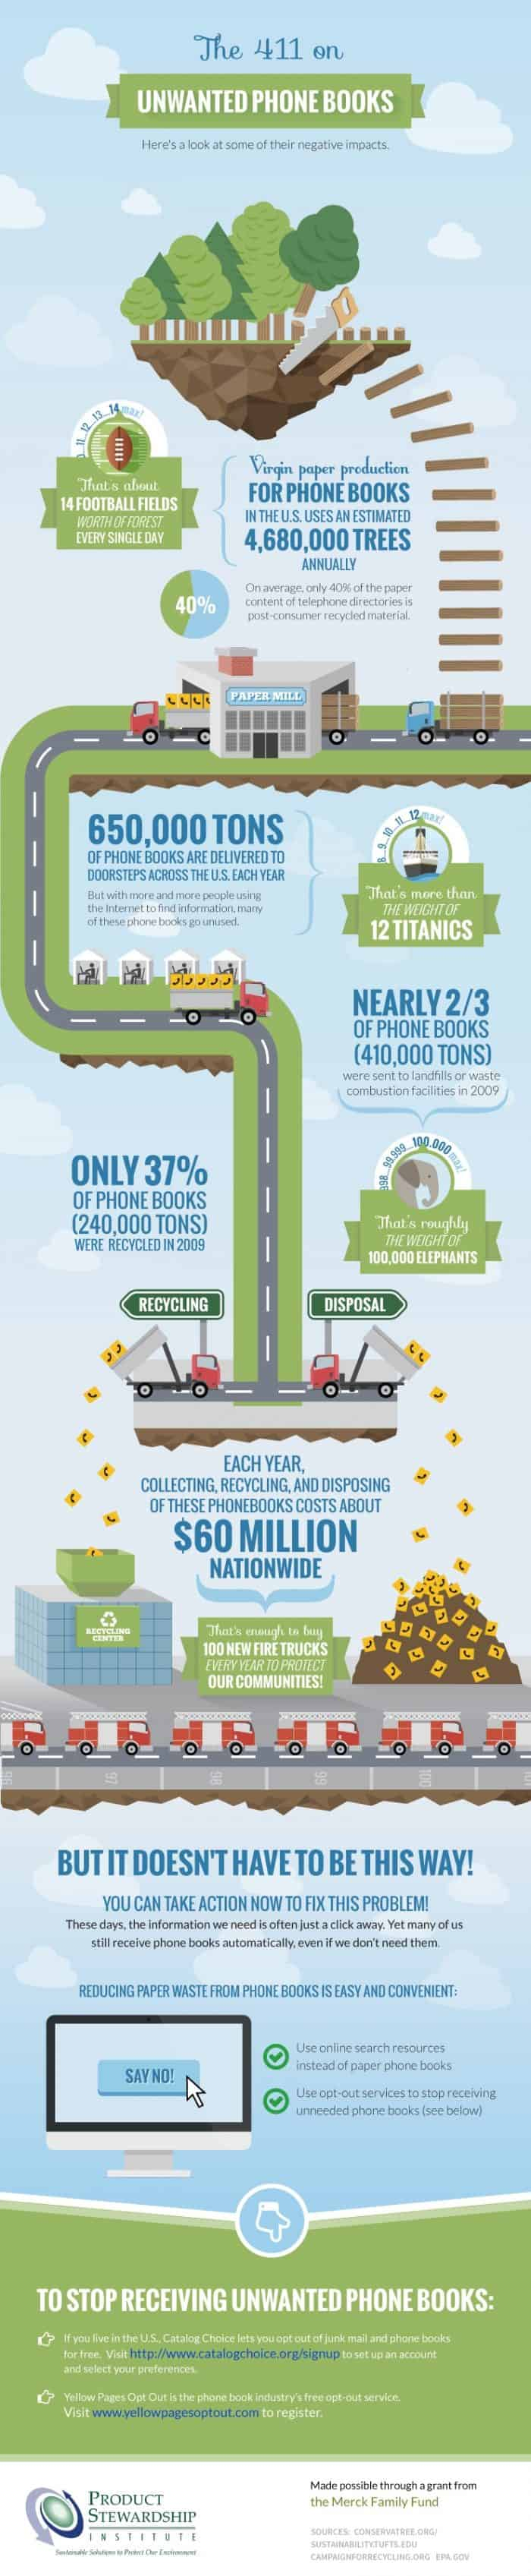 Consequences of Unwanted Phone Books Infographic